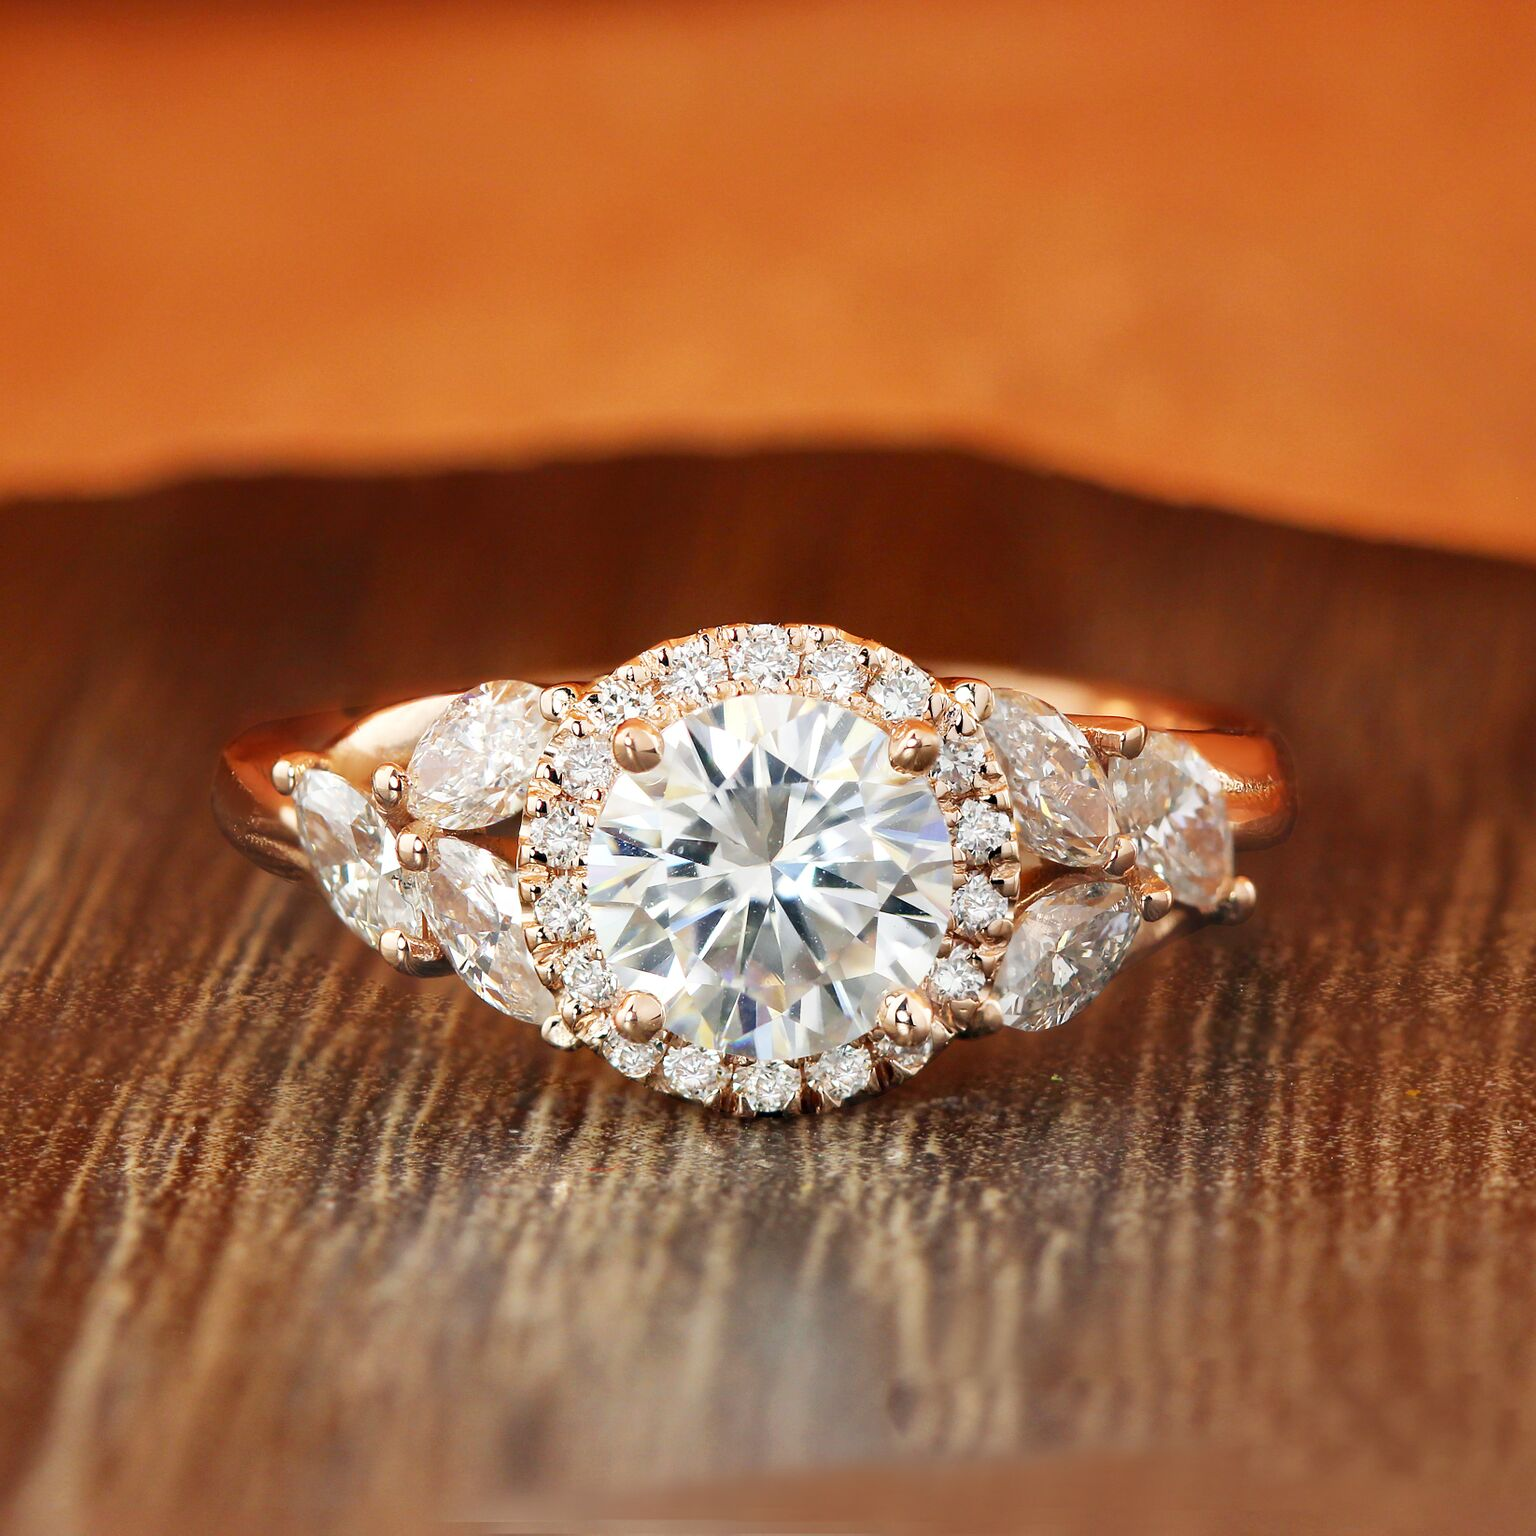 8 Amazing Facts About Moissanite